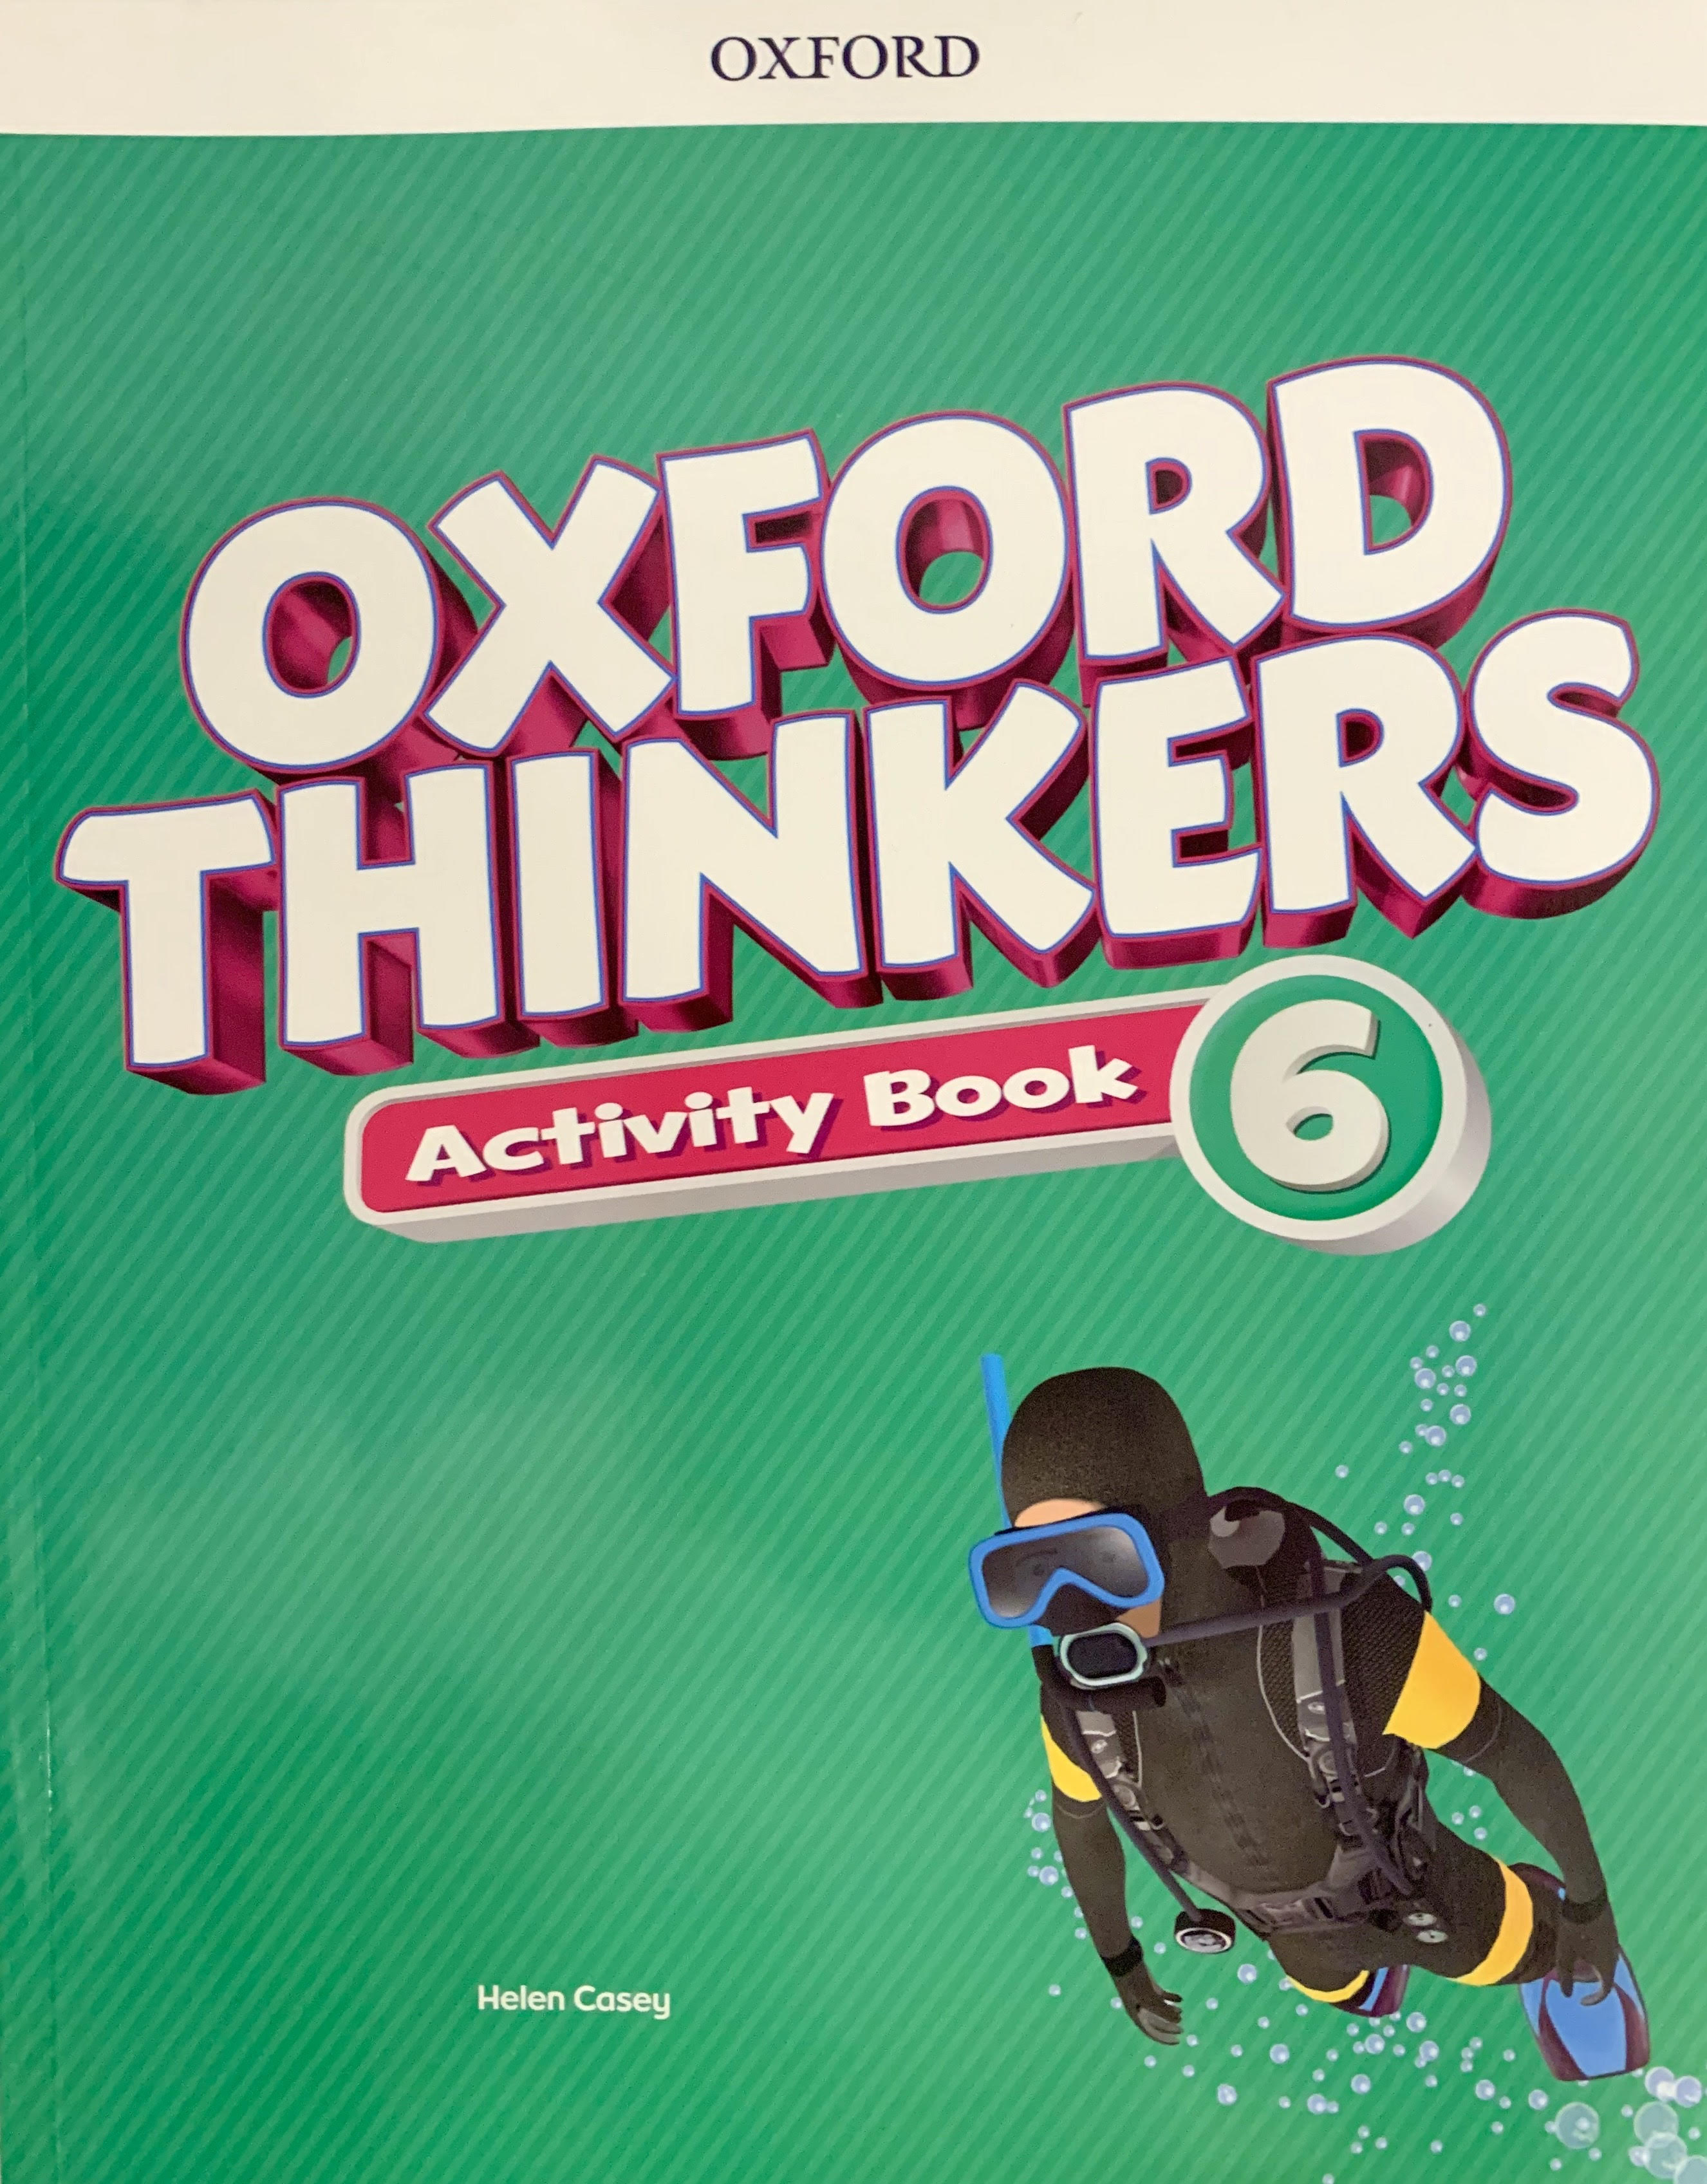 Oxford Thinkers Activity 6